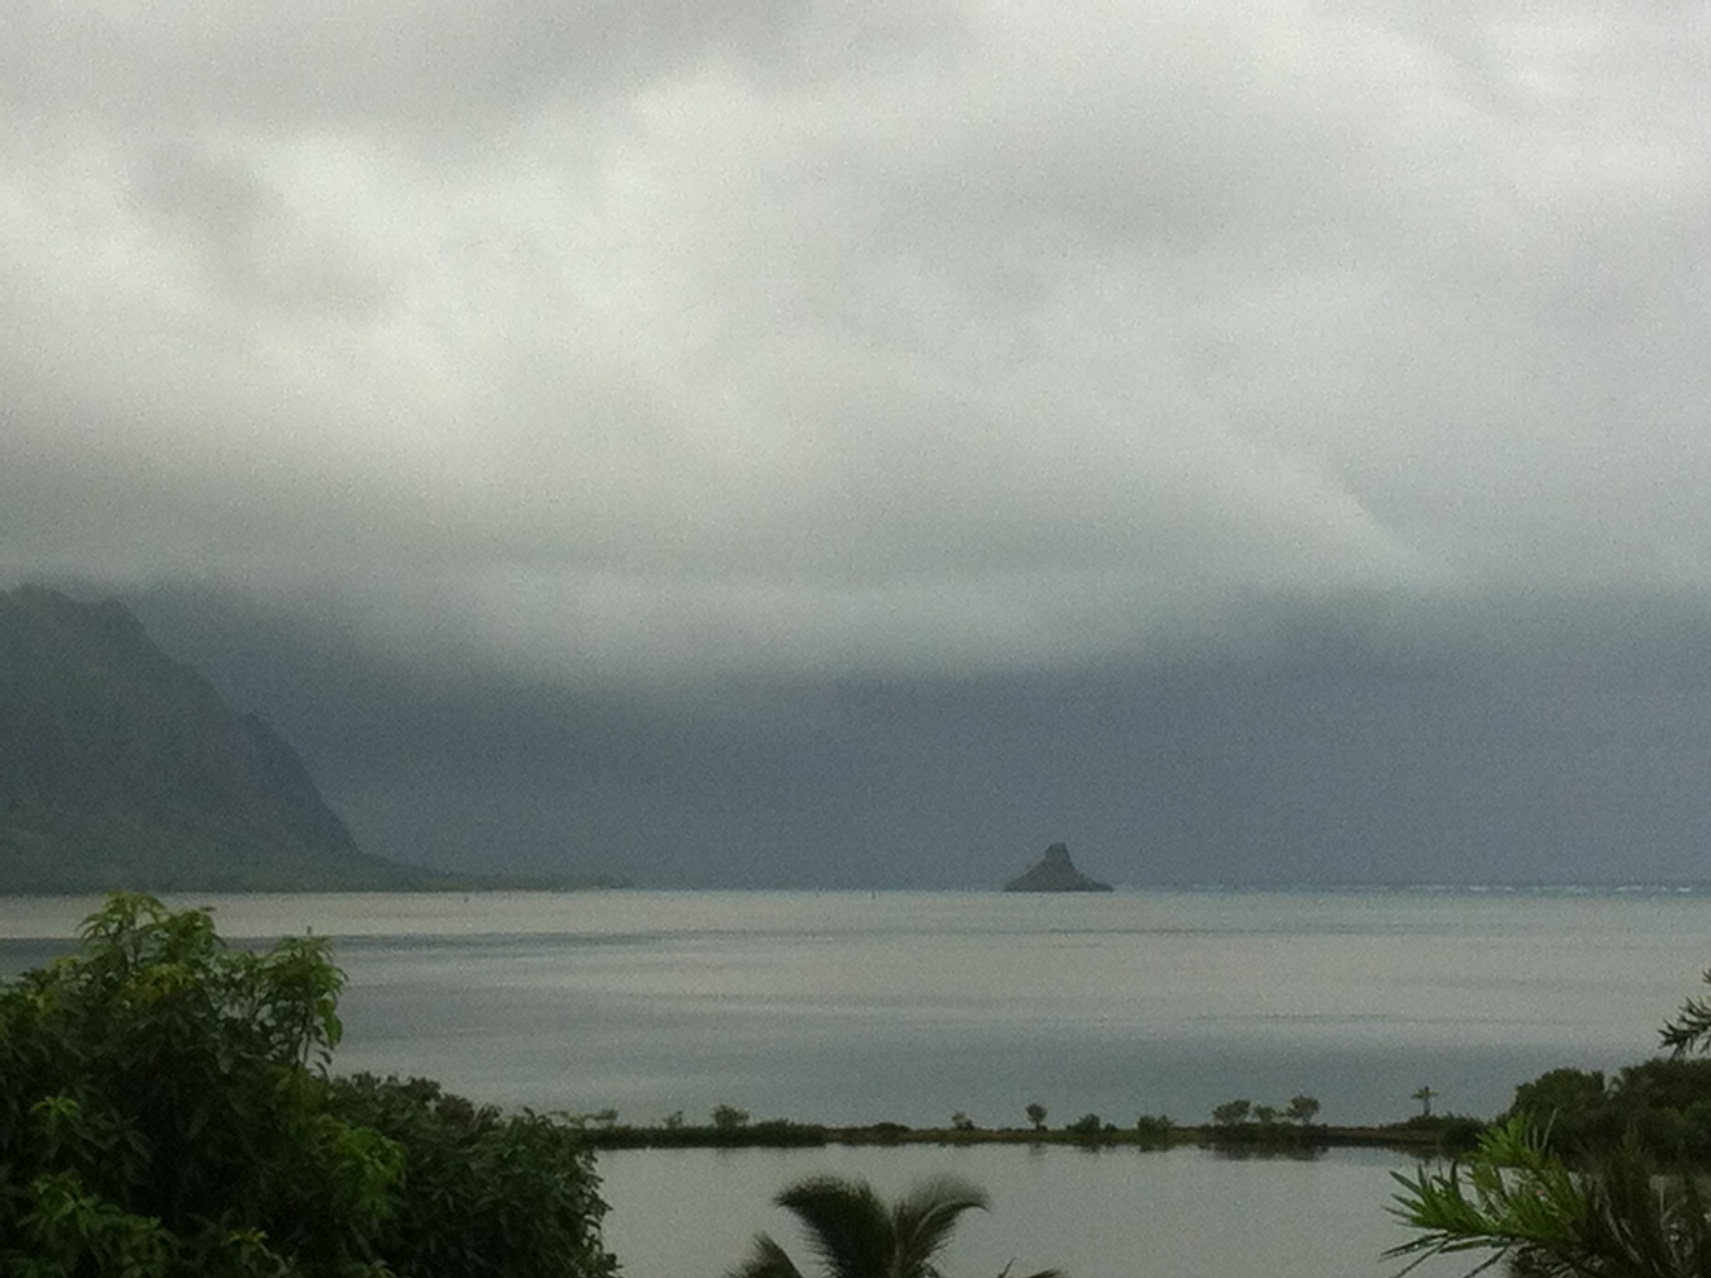 Storm looming in Kaneohe. Photo by - Melanie Gonzalez